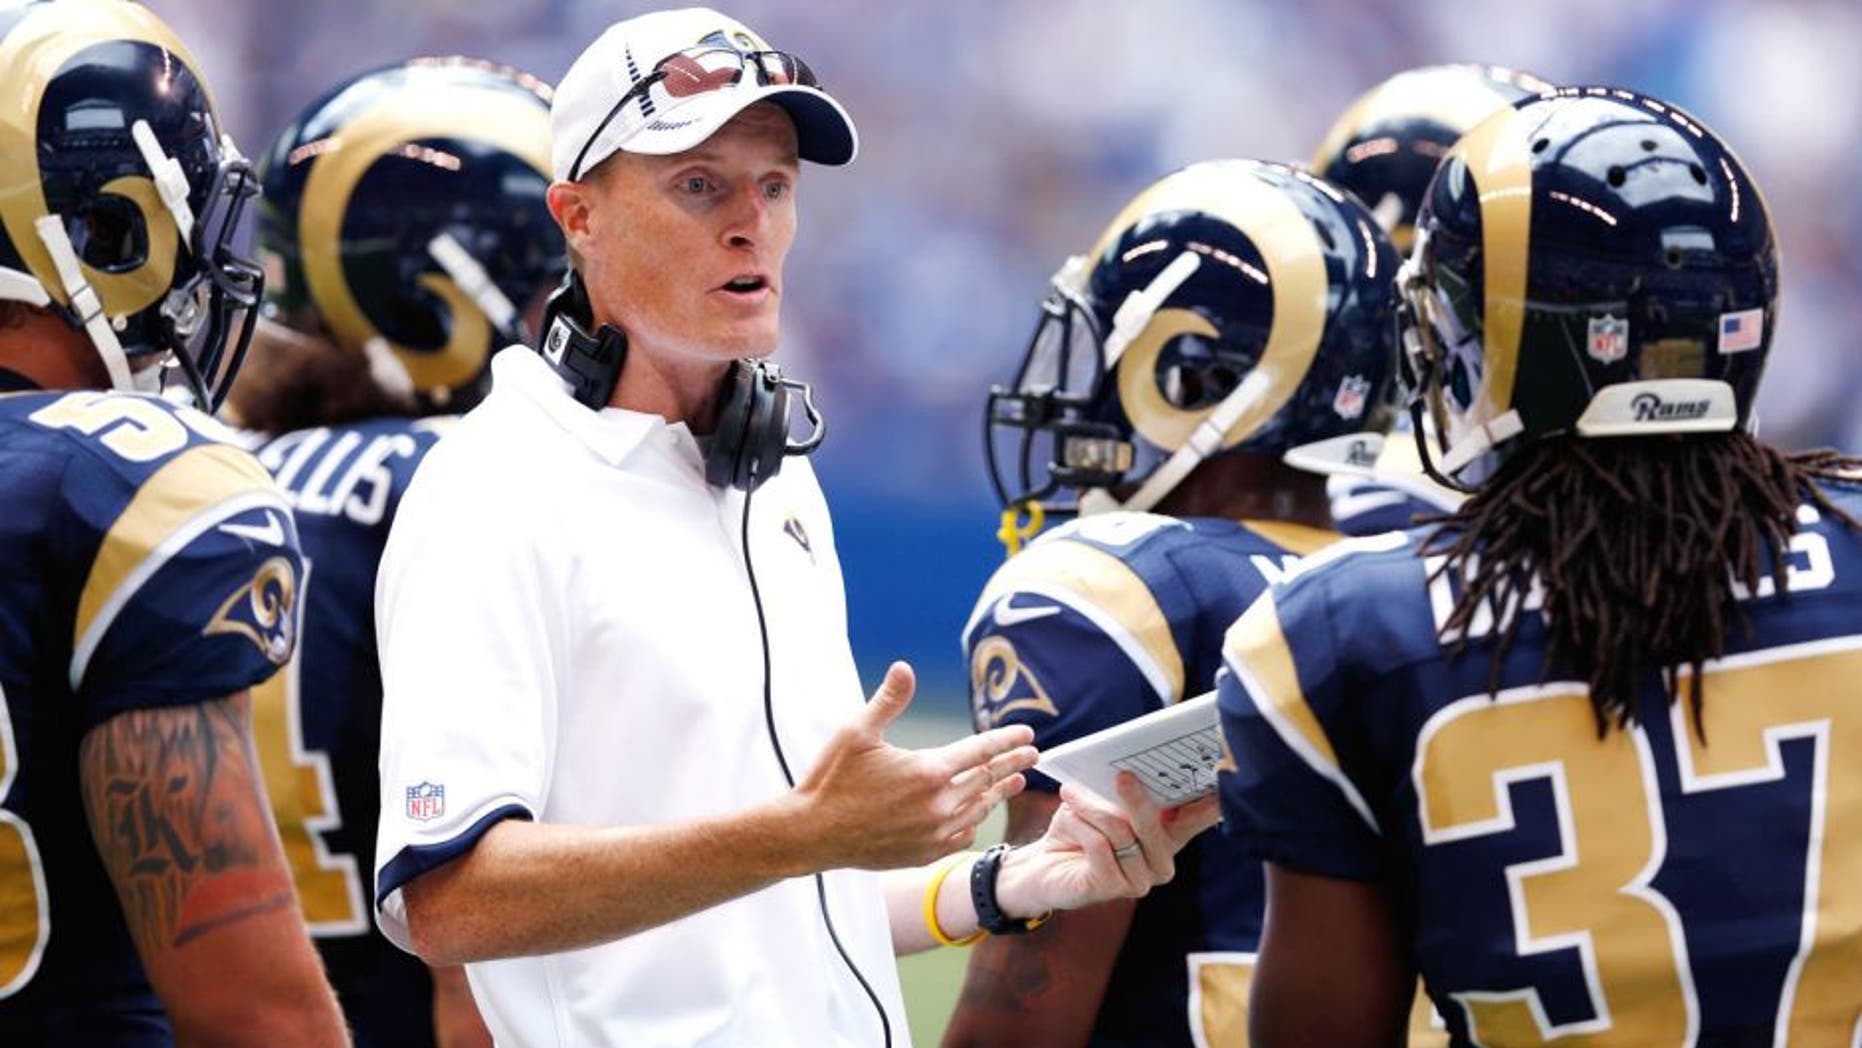 INDIANAPOLIS, IN - AUGUST 12: St. Louis Rams special teams coordinator John Fassel talks to his unit against the Indianapolis Colts during a preseason NFL game at Lucas Oil Stadium on August 12, 2012 in Indianapolis, Indiana. (Photo by Joe Robbins/Getty Images)